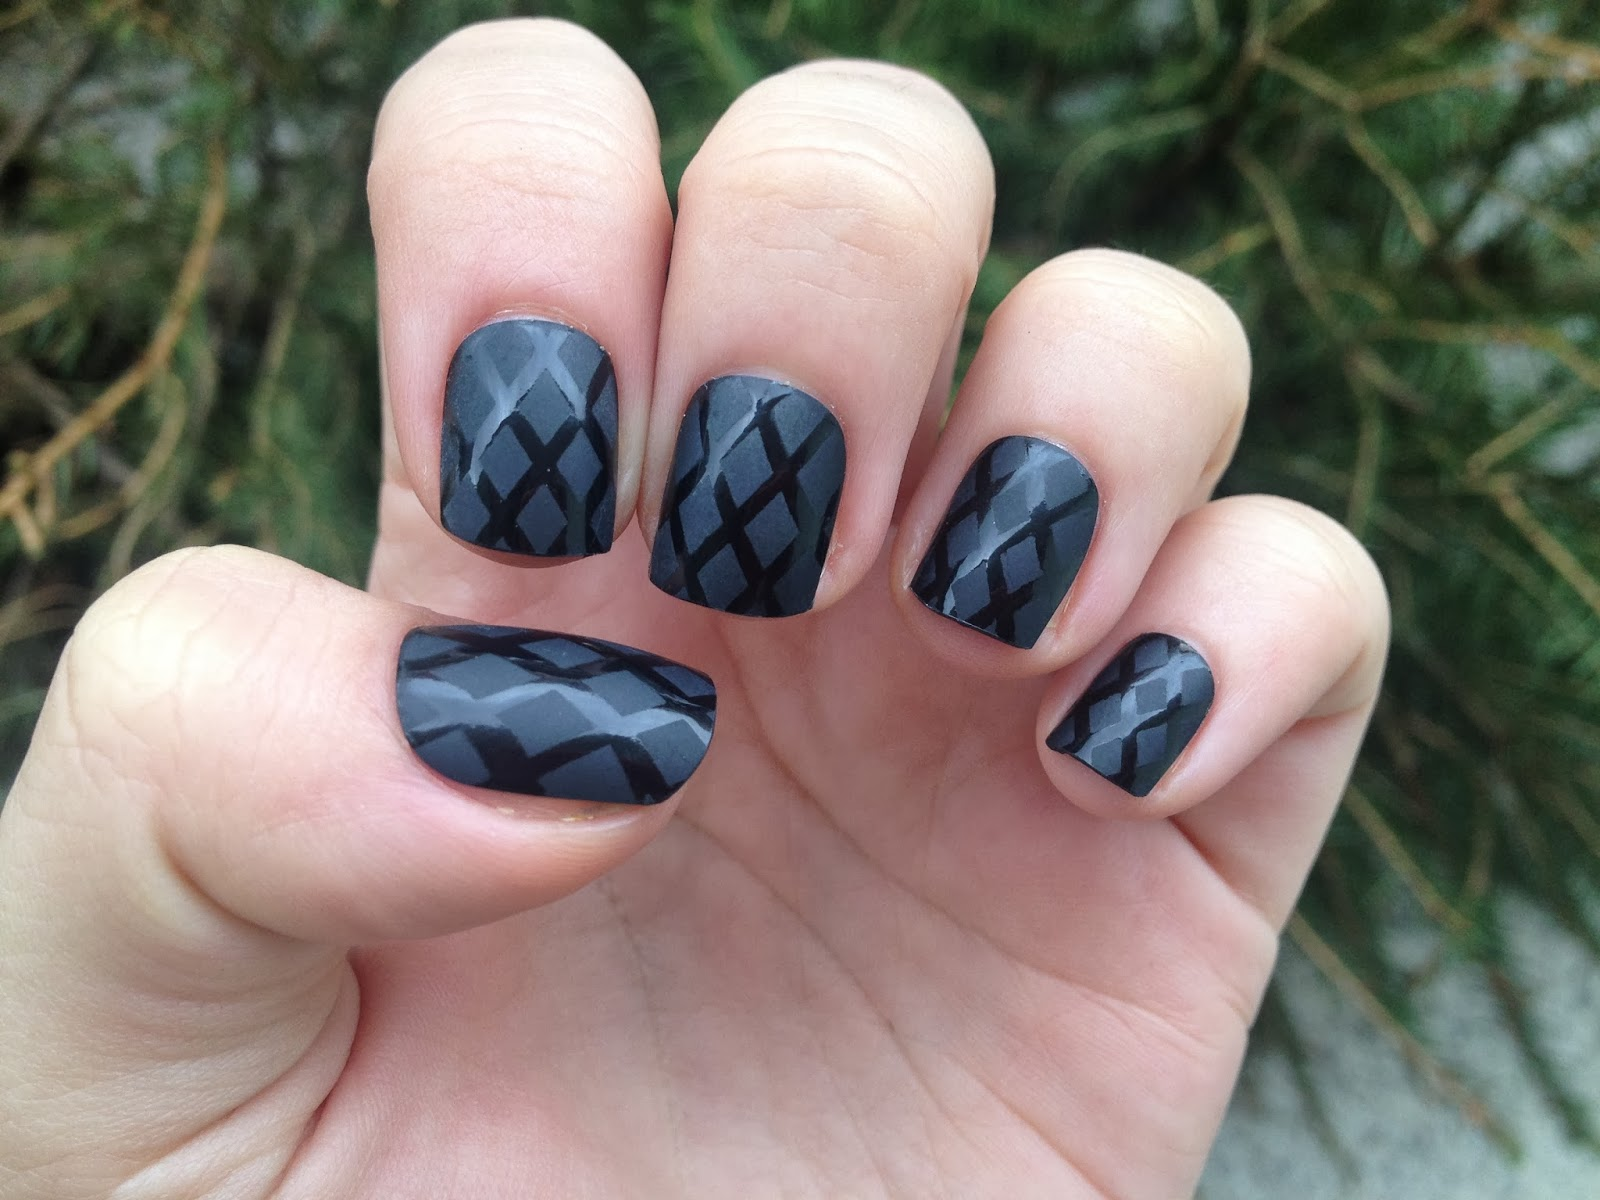 H&M FALSE NAILS REVIEW | lindasaidmeow: words,fashion & stuff from ...